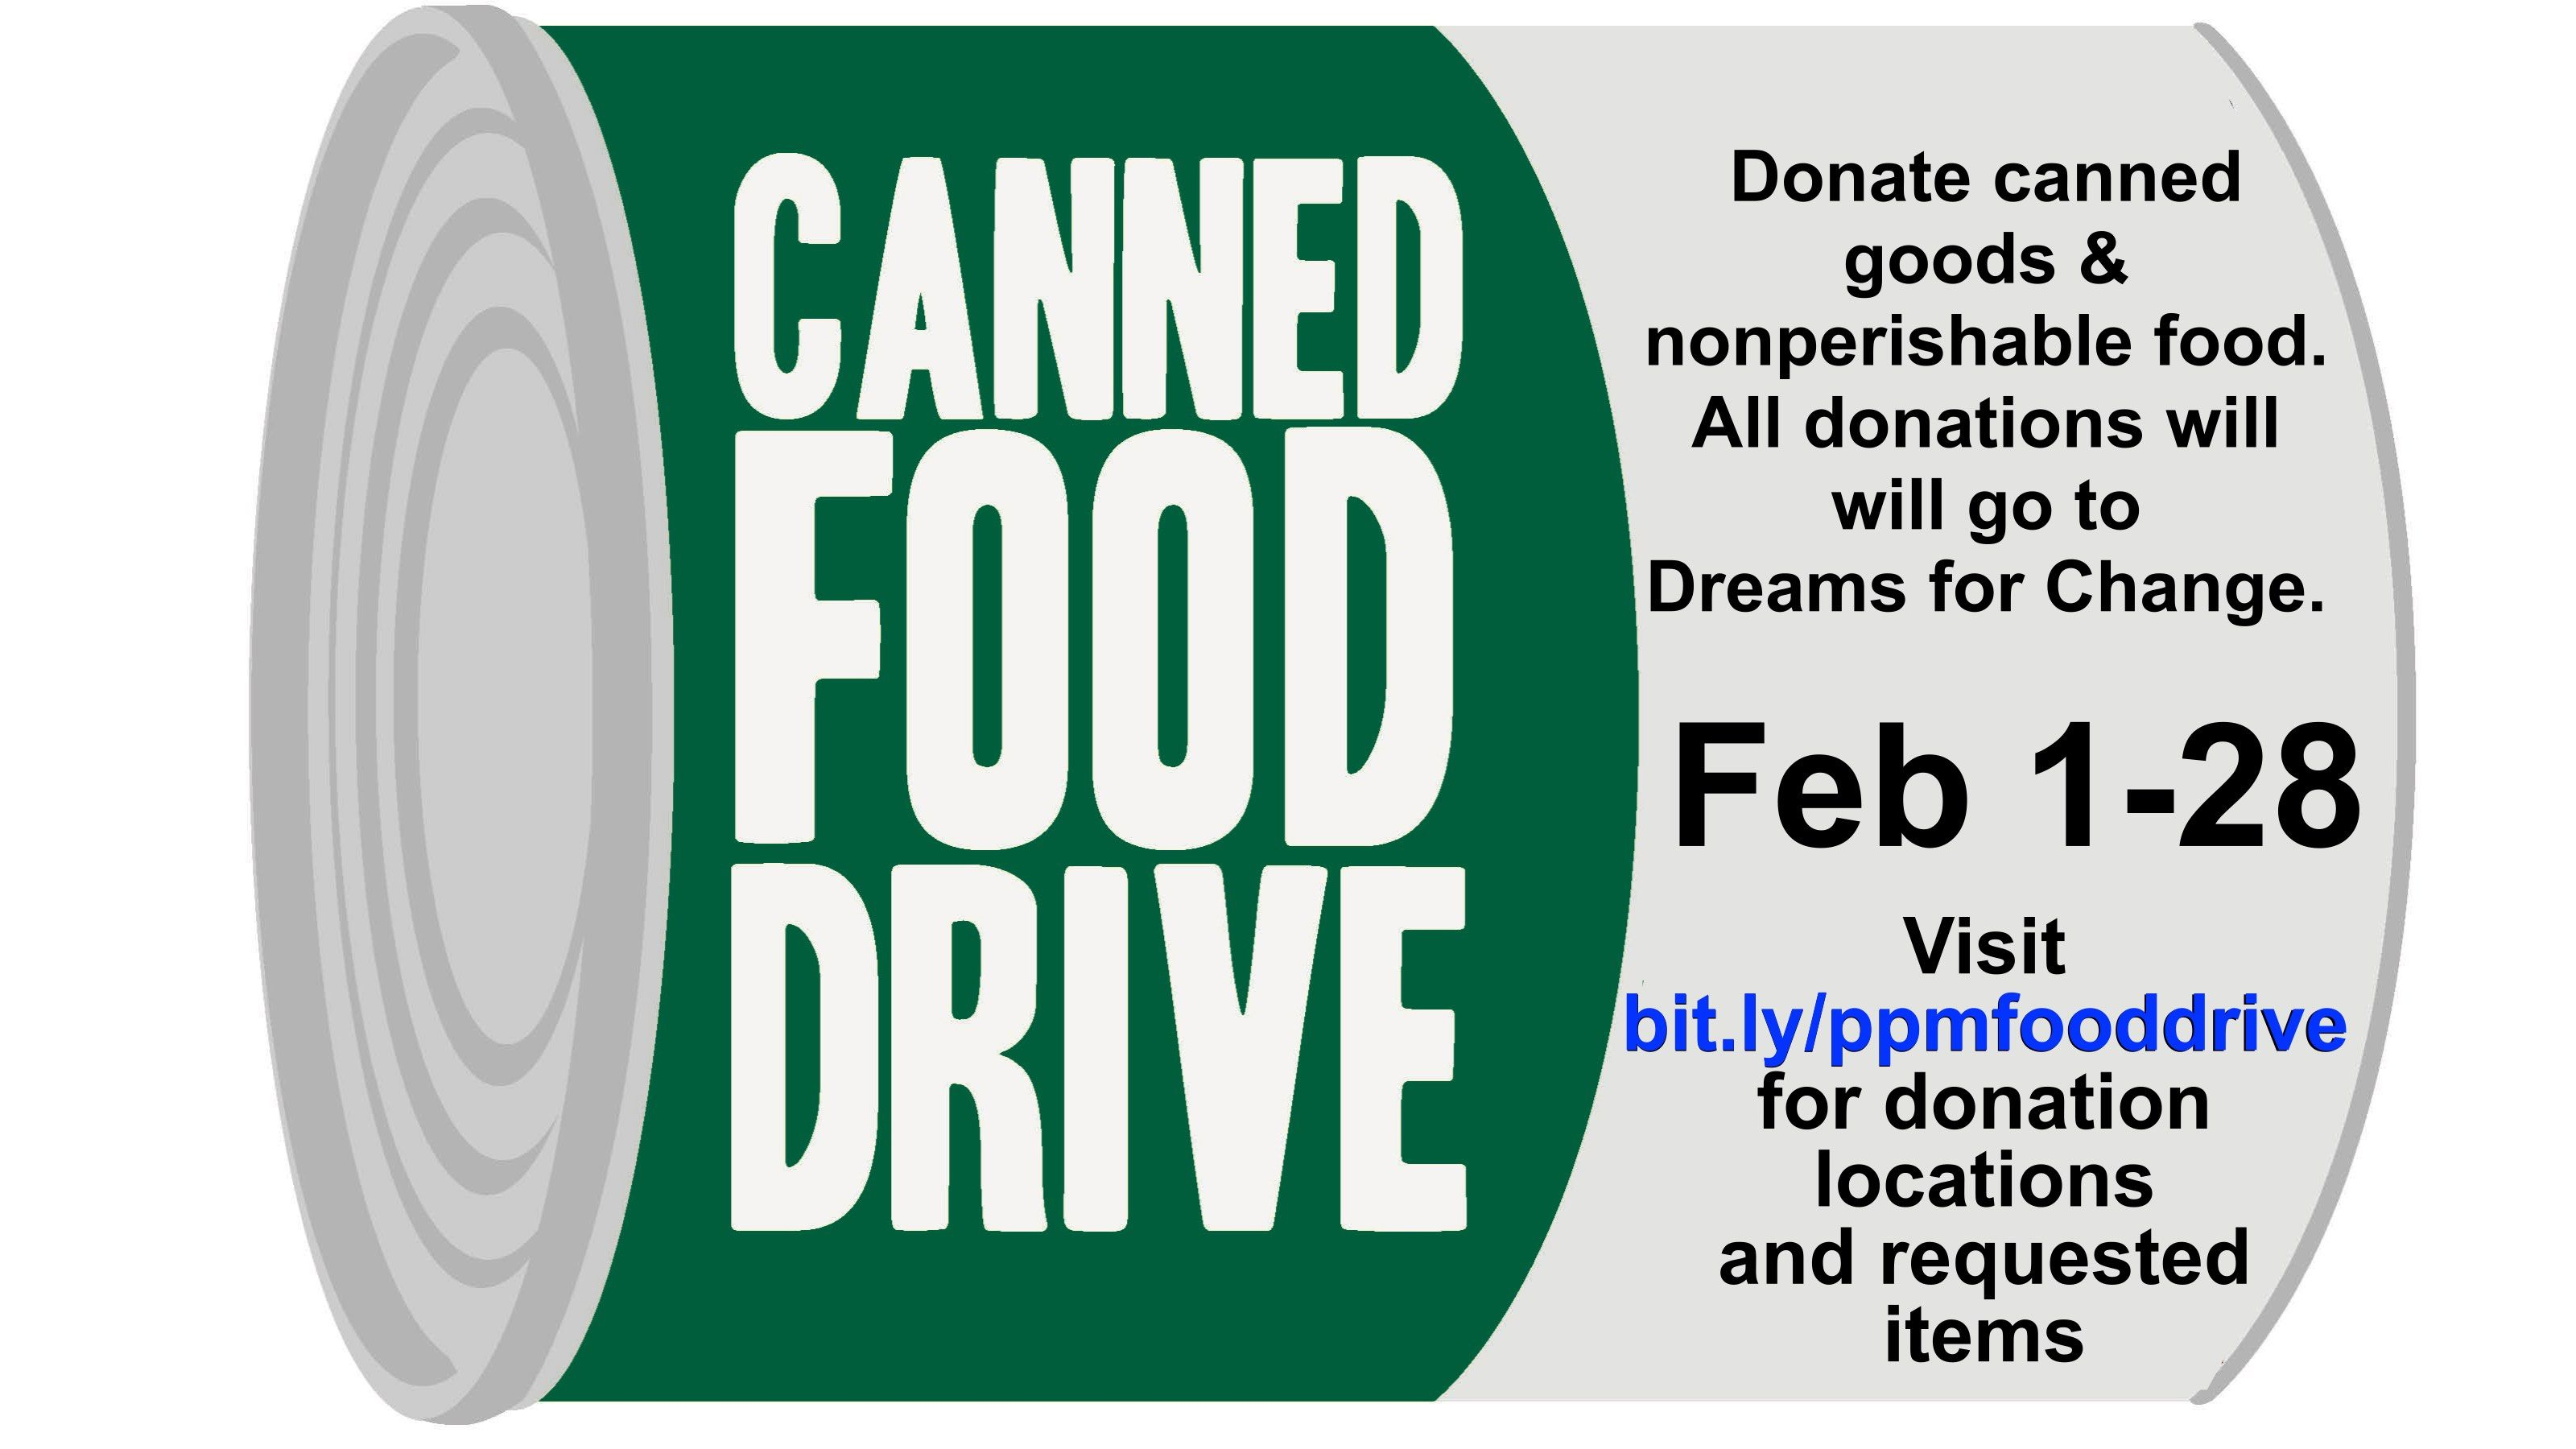 Canned Items And Non Perishable Food Drive To Benefit Dreams For Change Food Drive Flyer Canned Food Drive Food Drive